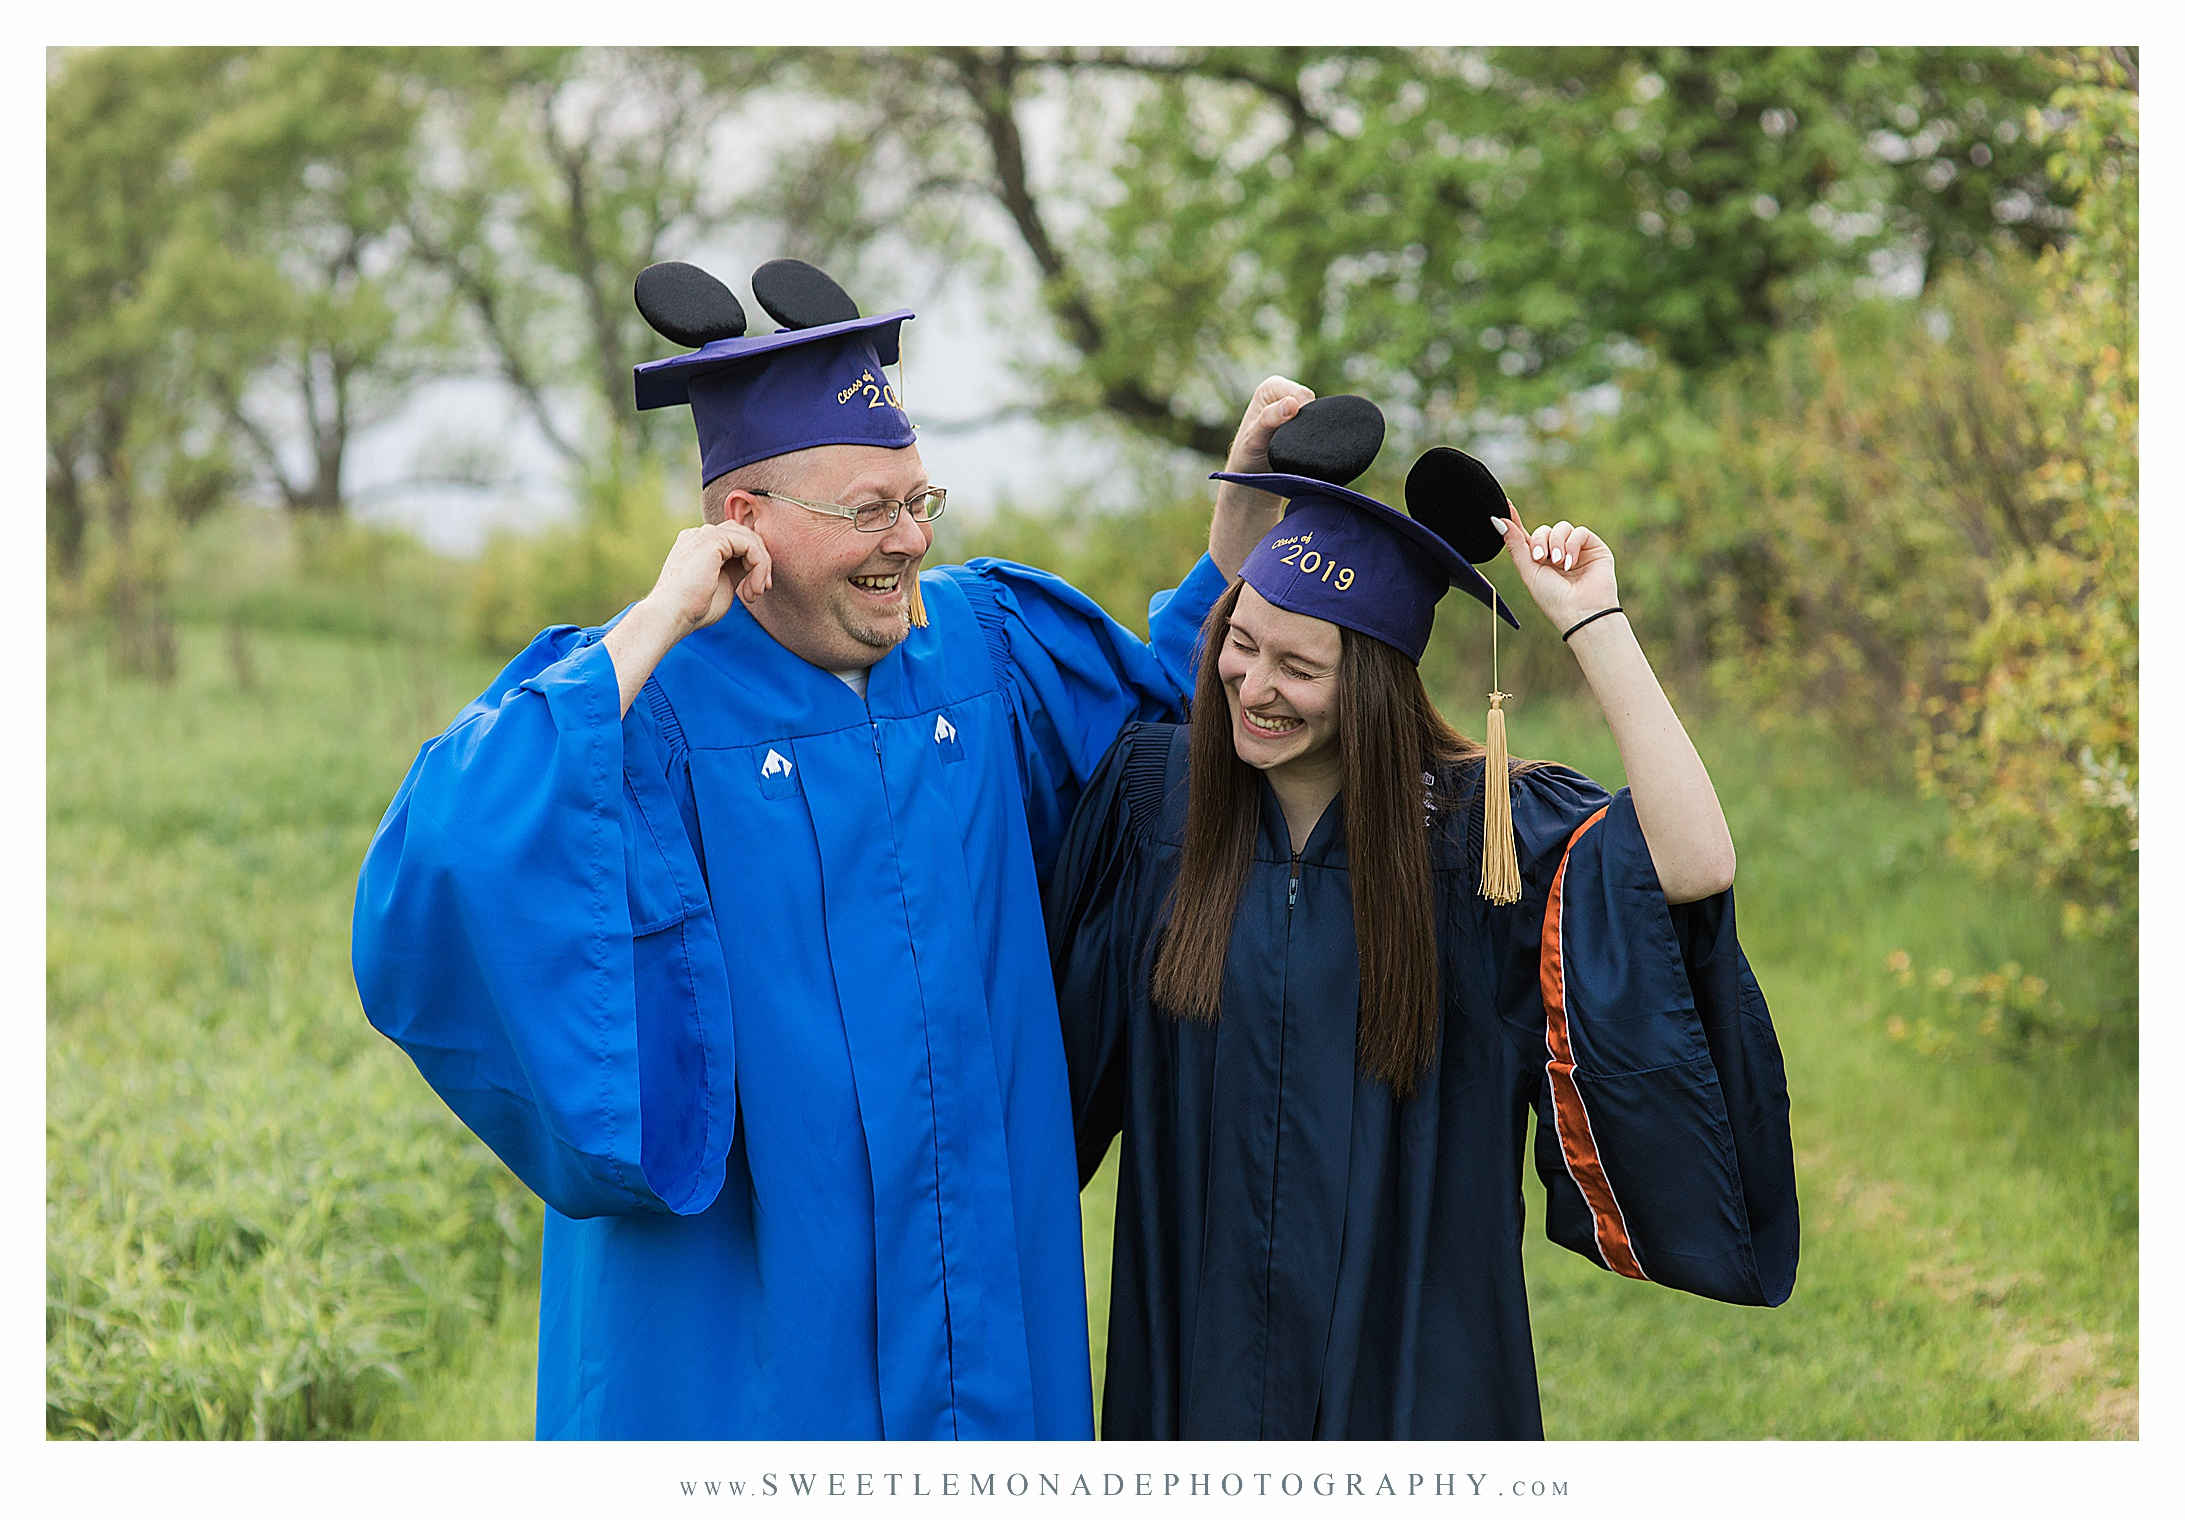 disney-mickey-ears-graduation-cap-pictures-mahomet-illinois-sweet-lemonade-photography_2435.jpg